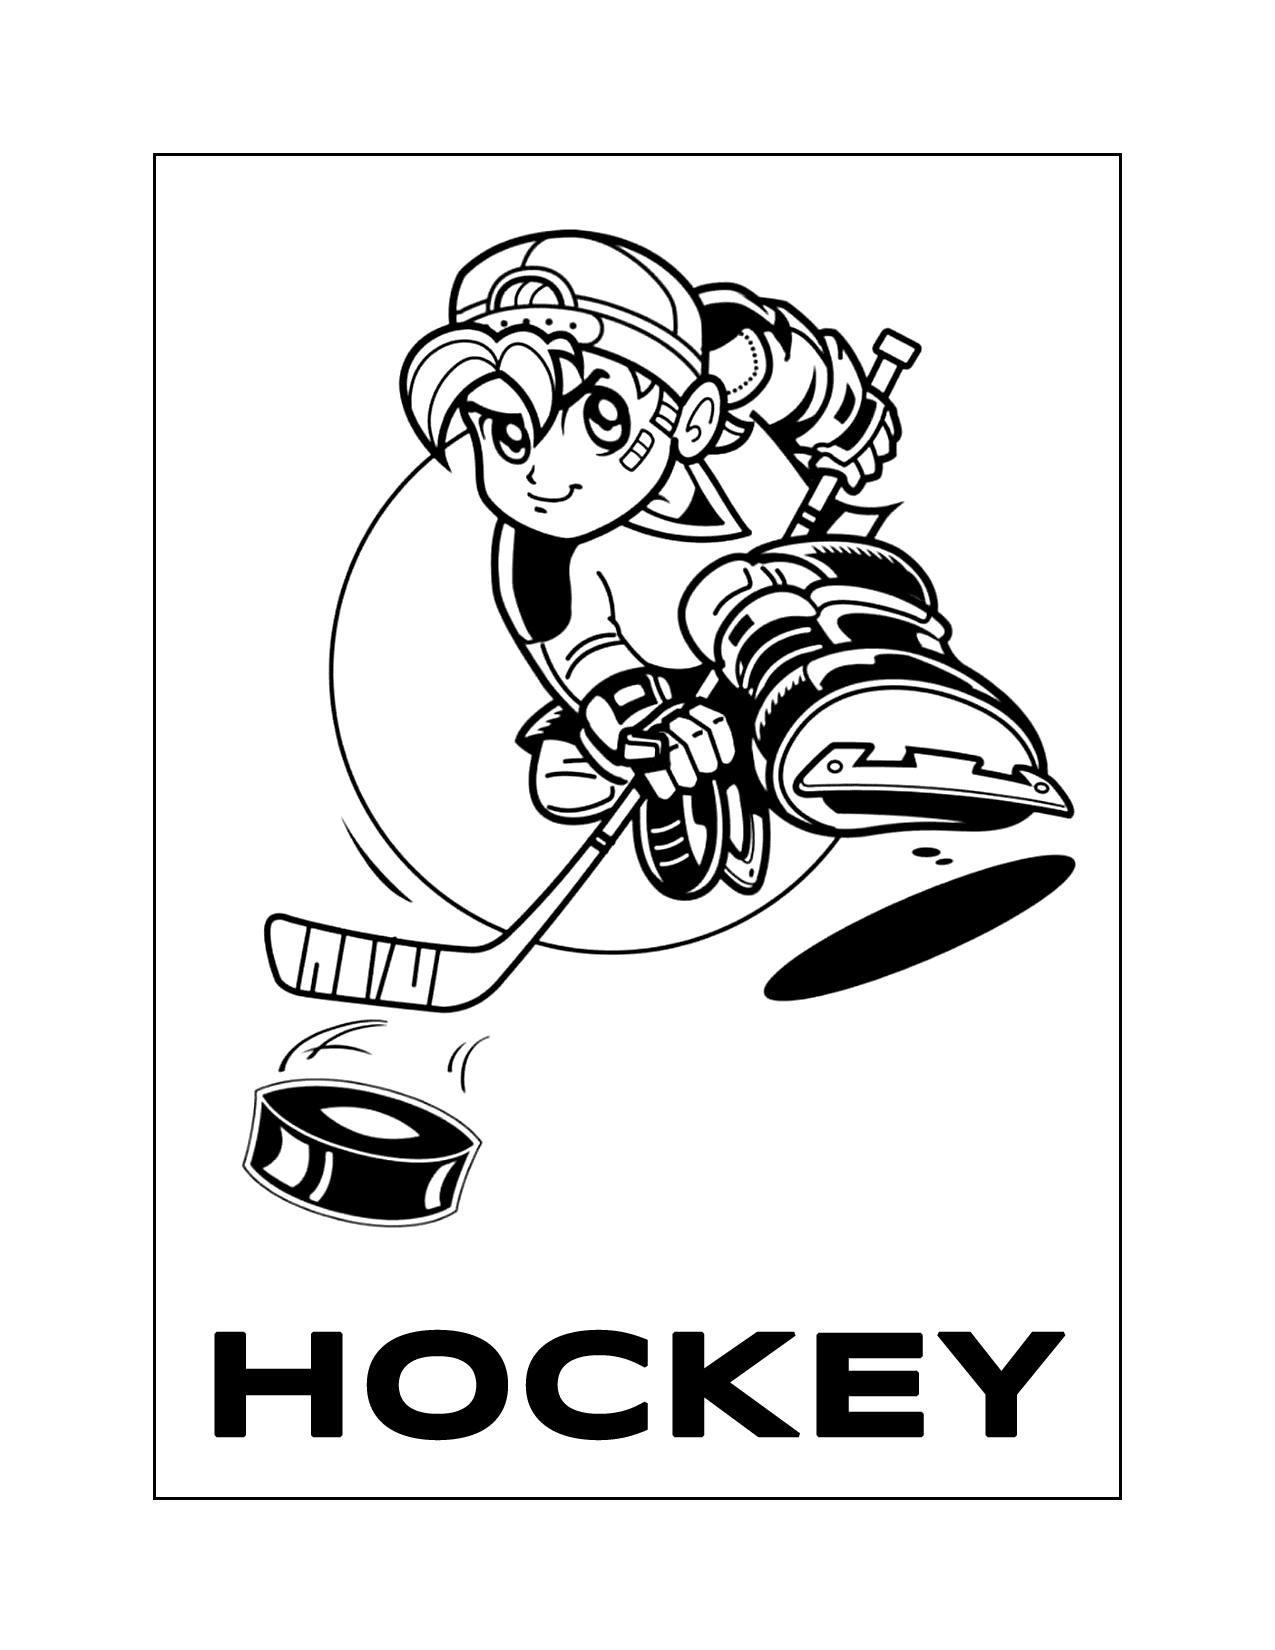 Cool Hockey Kid Coloring Page